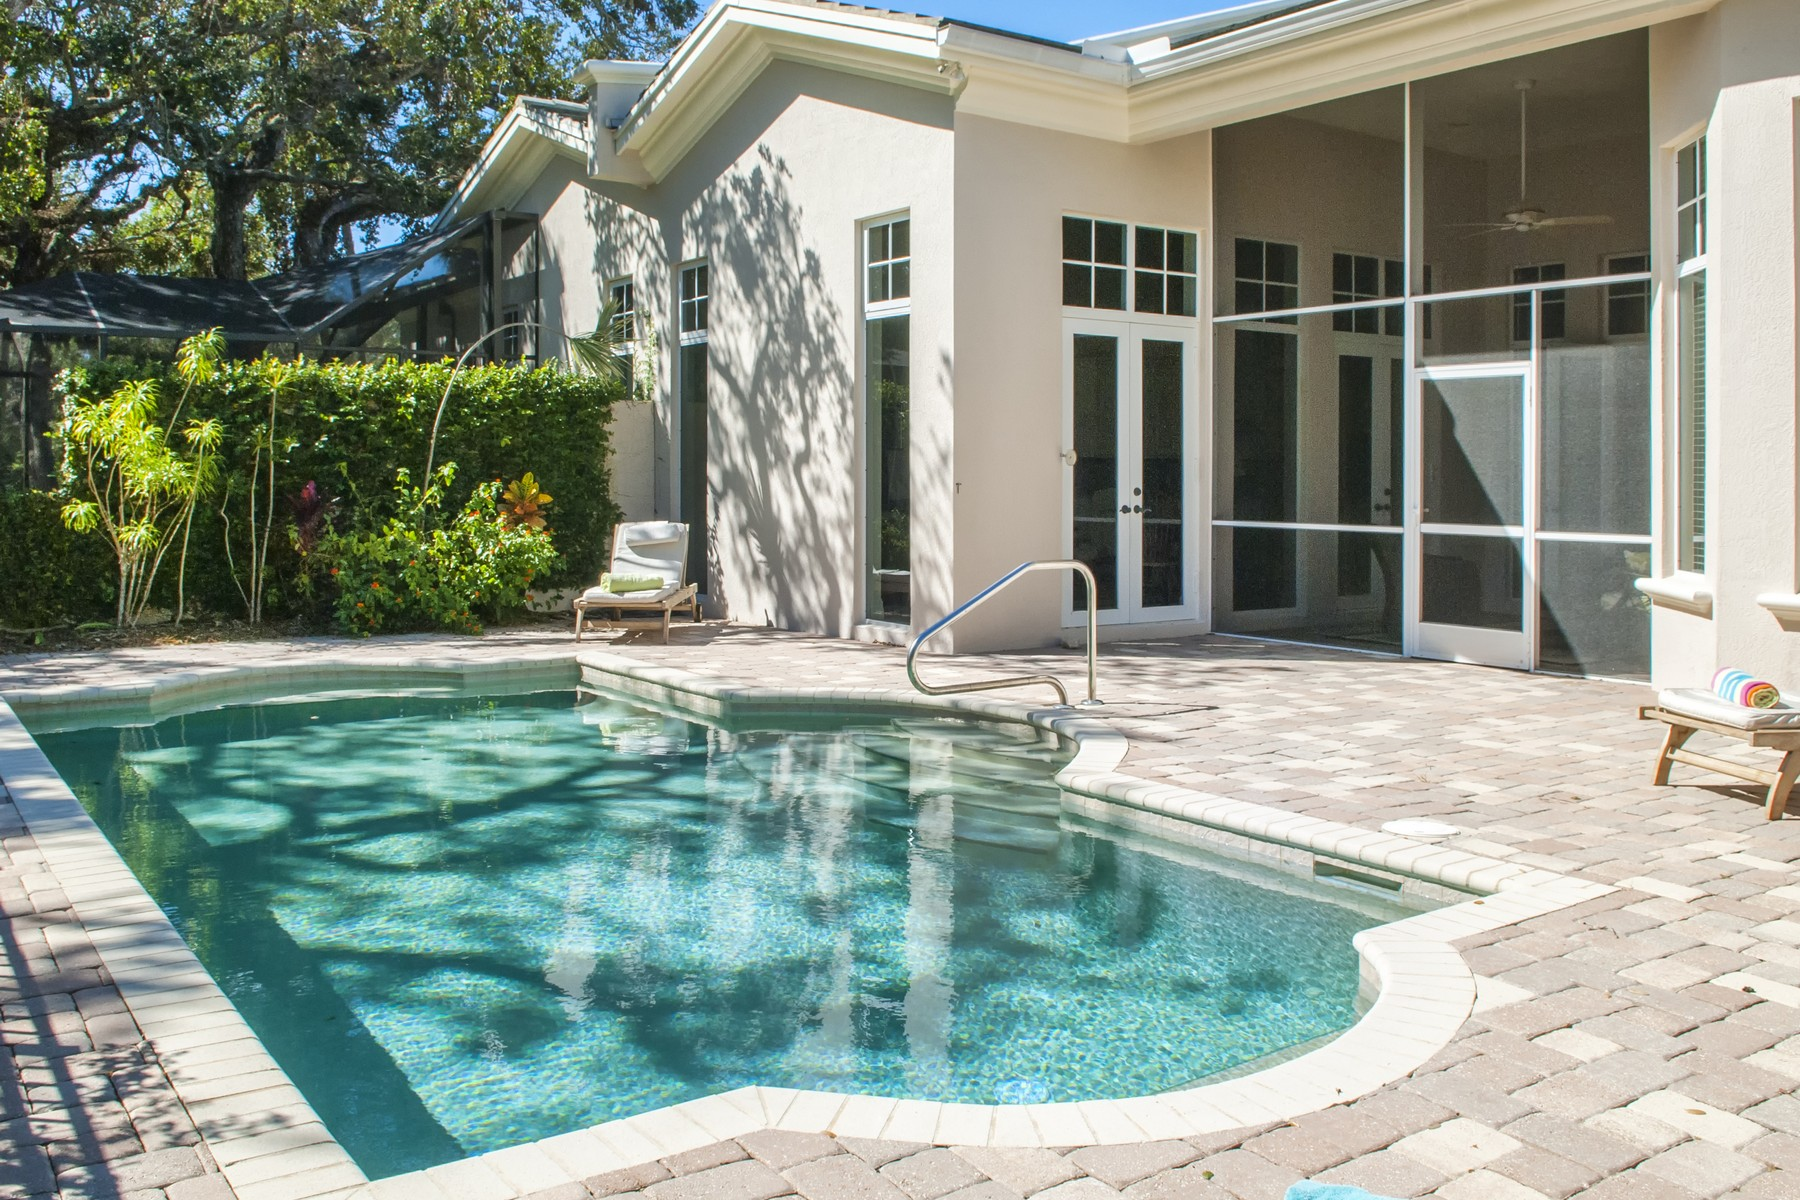 Maison unifamiliale pour l Vente à River Club at Carlton 1628 Weybridge Circle Indian River Shores, Florida, 32963 États-Unis